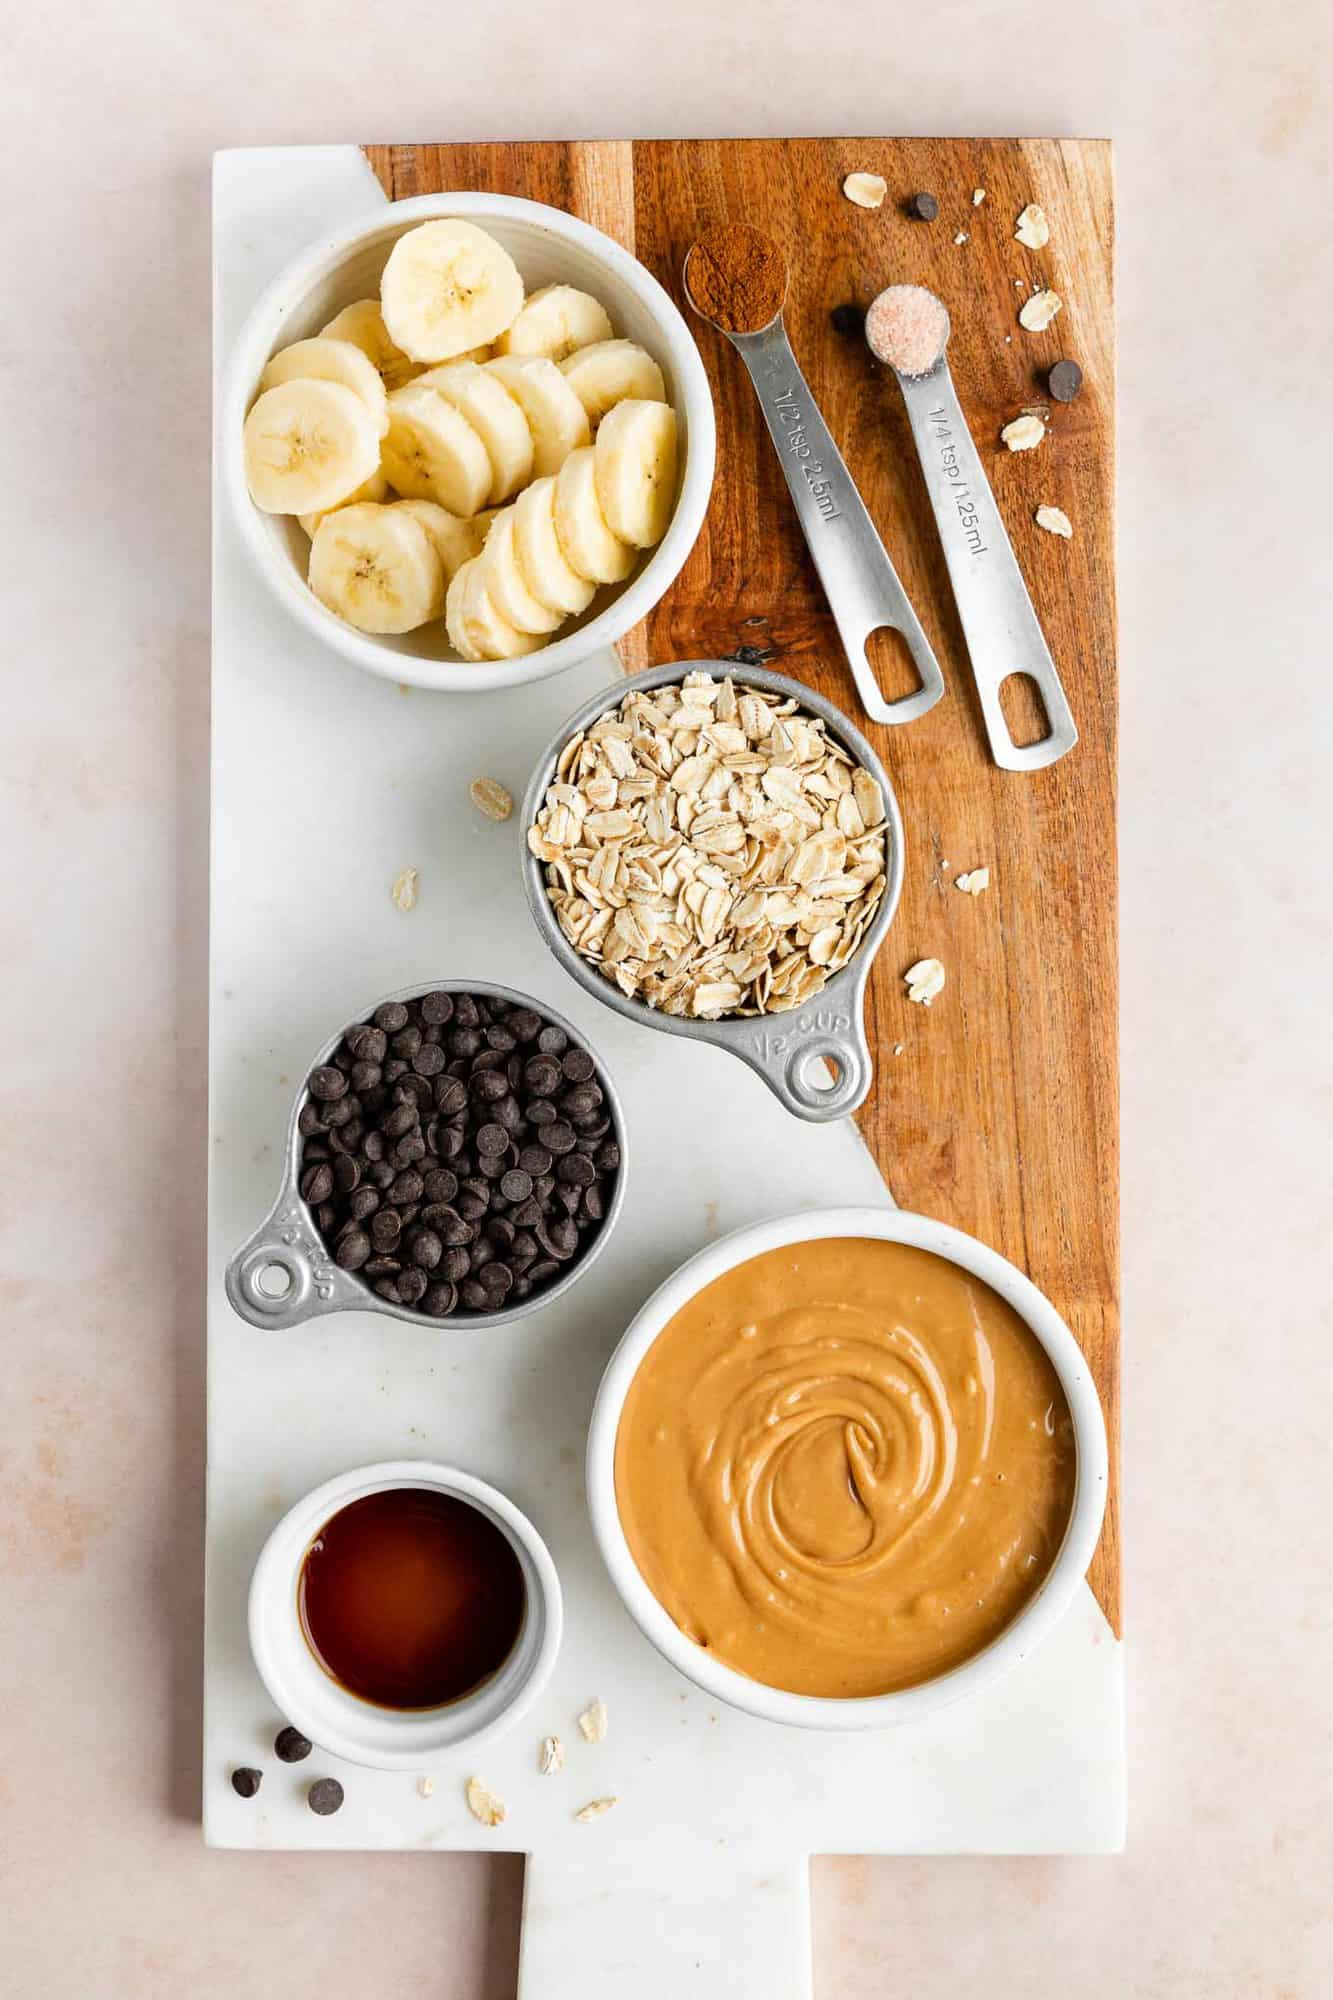 a wood and marble cutting board topped with bowls of ingredients, including sliced banana, peanut butter, chocolate chips, rolled oats, cinnamon, and vanilla extract